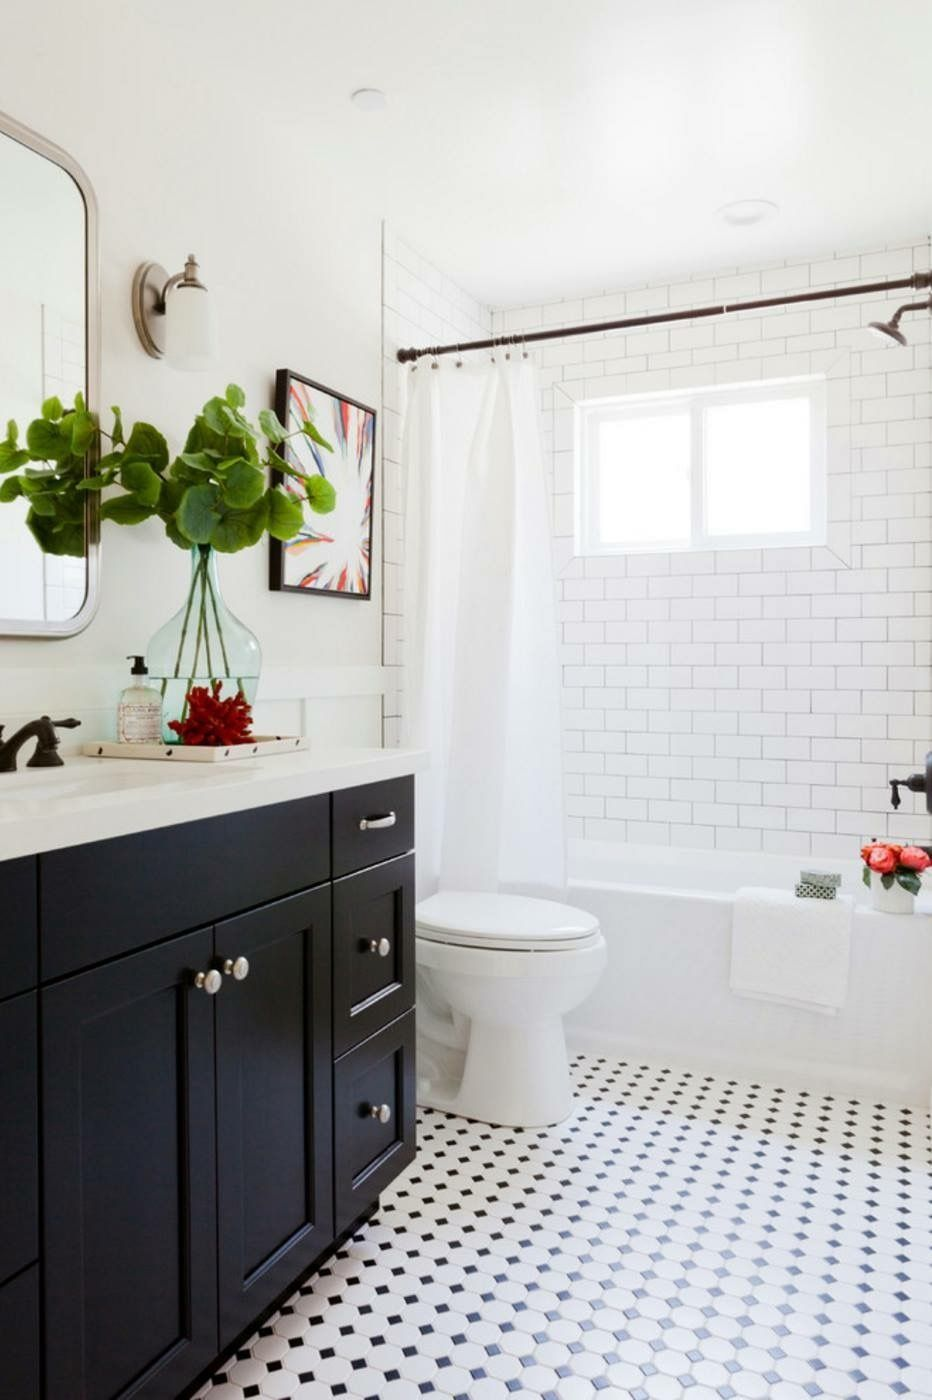 35 Awesome Bathroom Design Ideas in 2018 | INSPIRE | Bathrooms ...